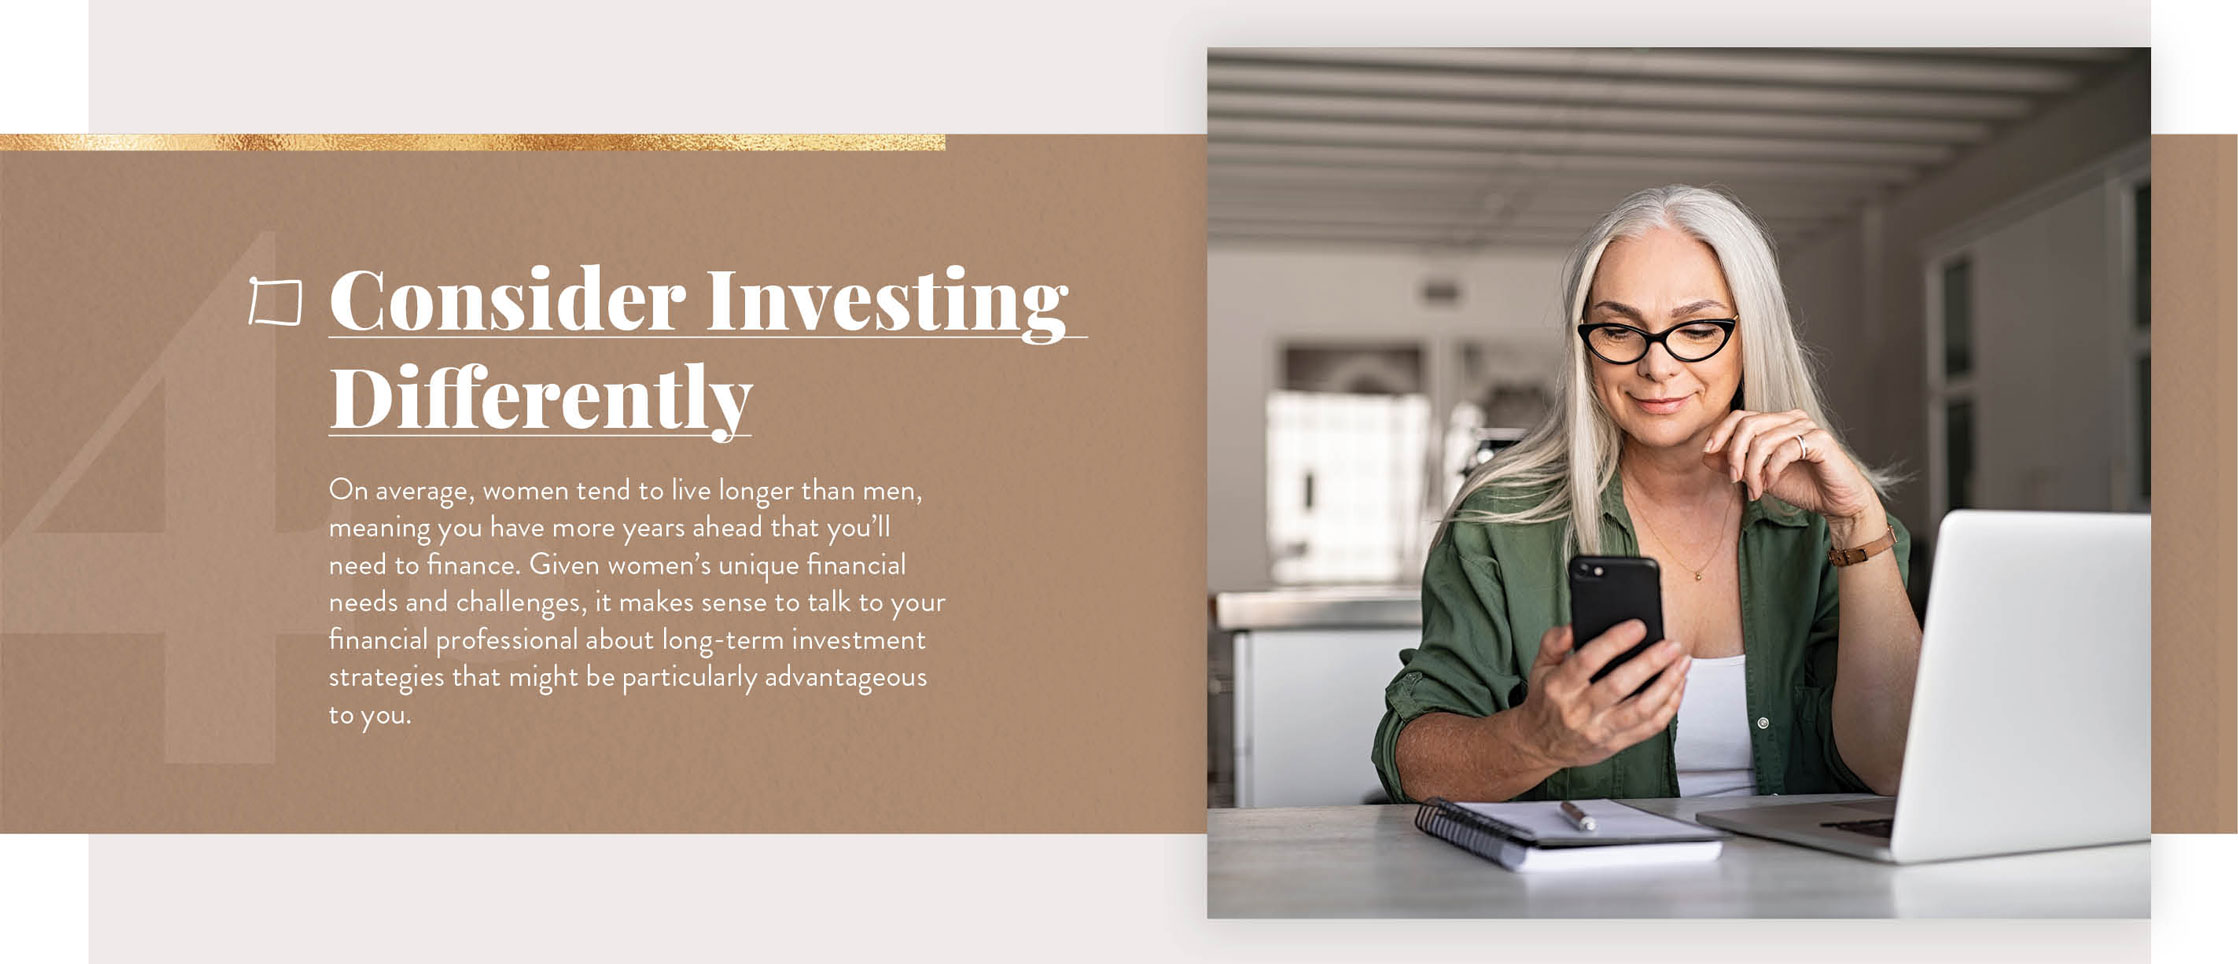 Consider Investing Differently. On average, women tend to live longer than men, meaning you have more years ahead that you'll need to finance. Given women's unique financial needs and challenges, it makes sense to talk to your financial professional about long-term investment strategies that might be particularly advantageous to you.